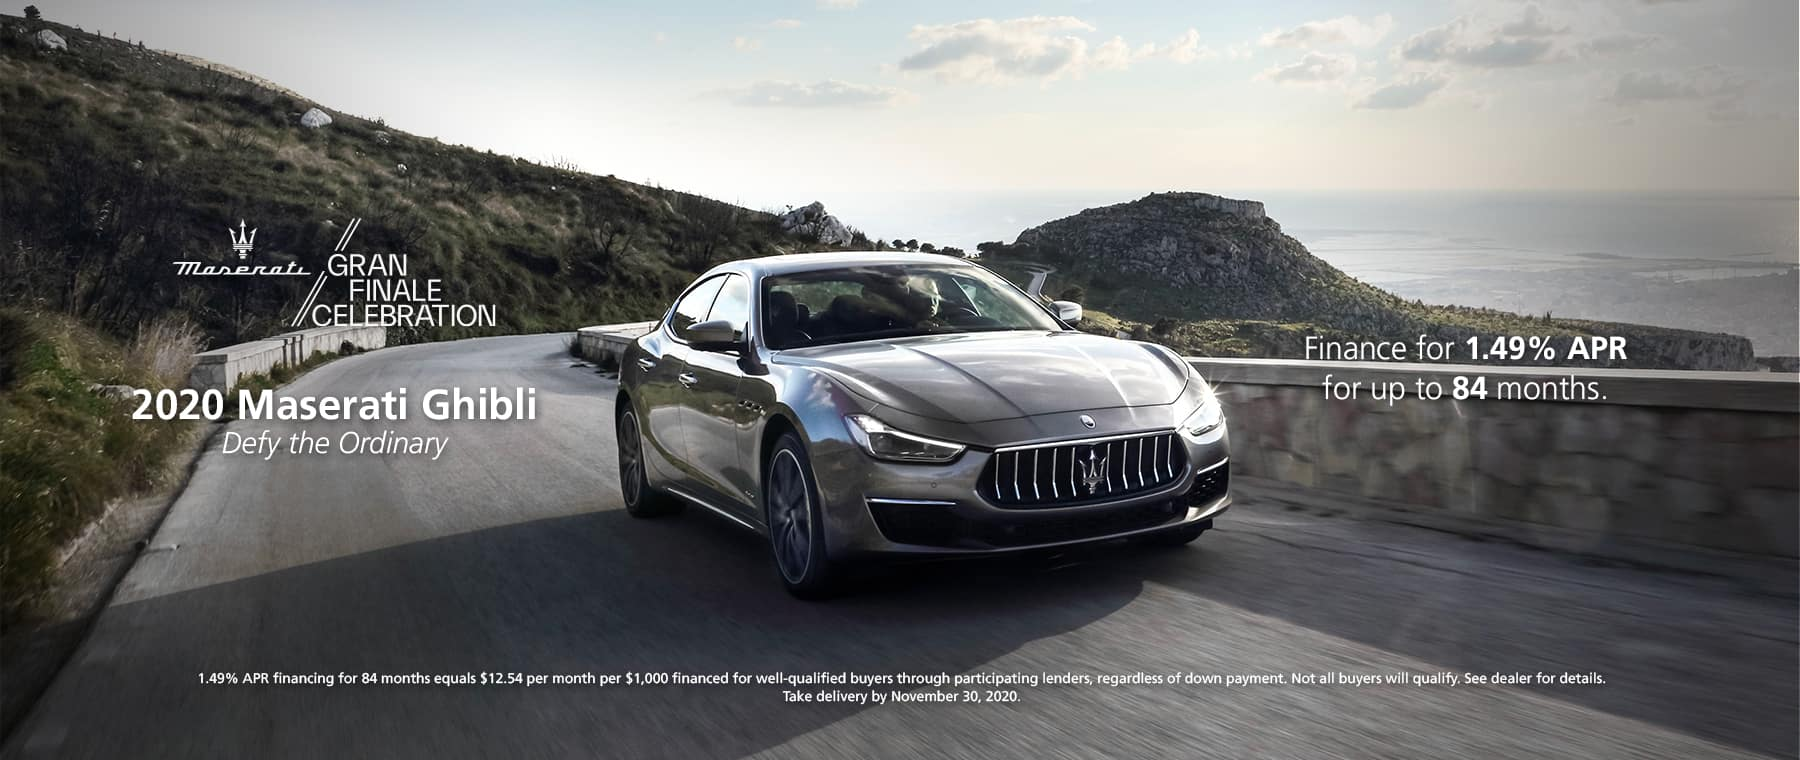 2020 Maserati Ghibli. Finance for 1.49% APR for up to 84 months.